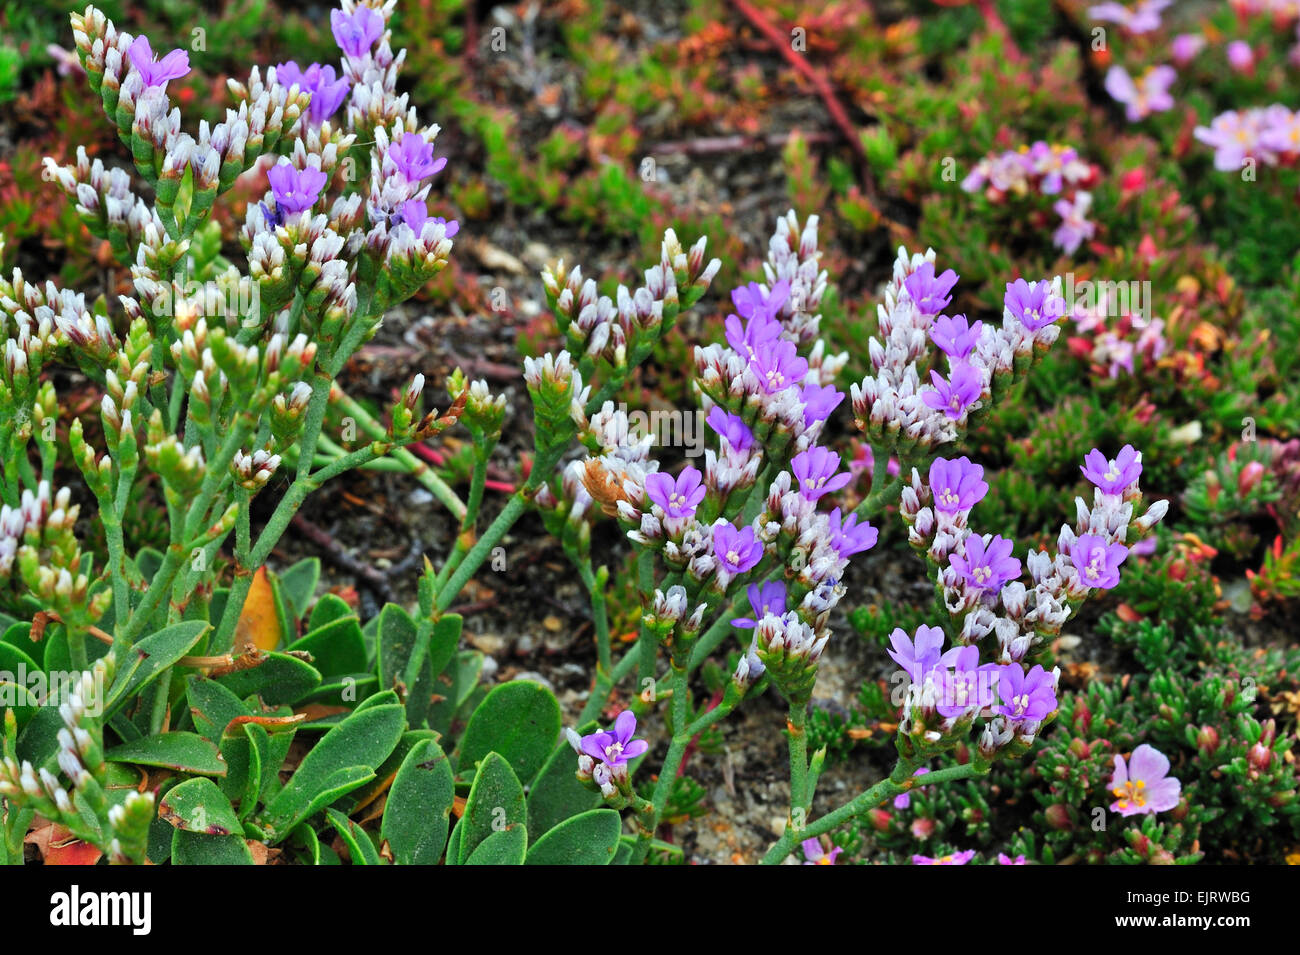 Rock sea lavender / Dwarf sea-lavender (Limonium binervosum) in flower - Stock Image